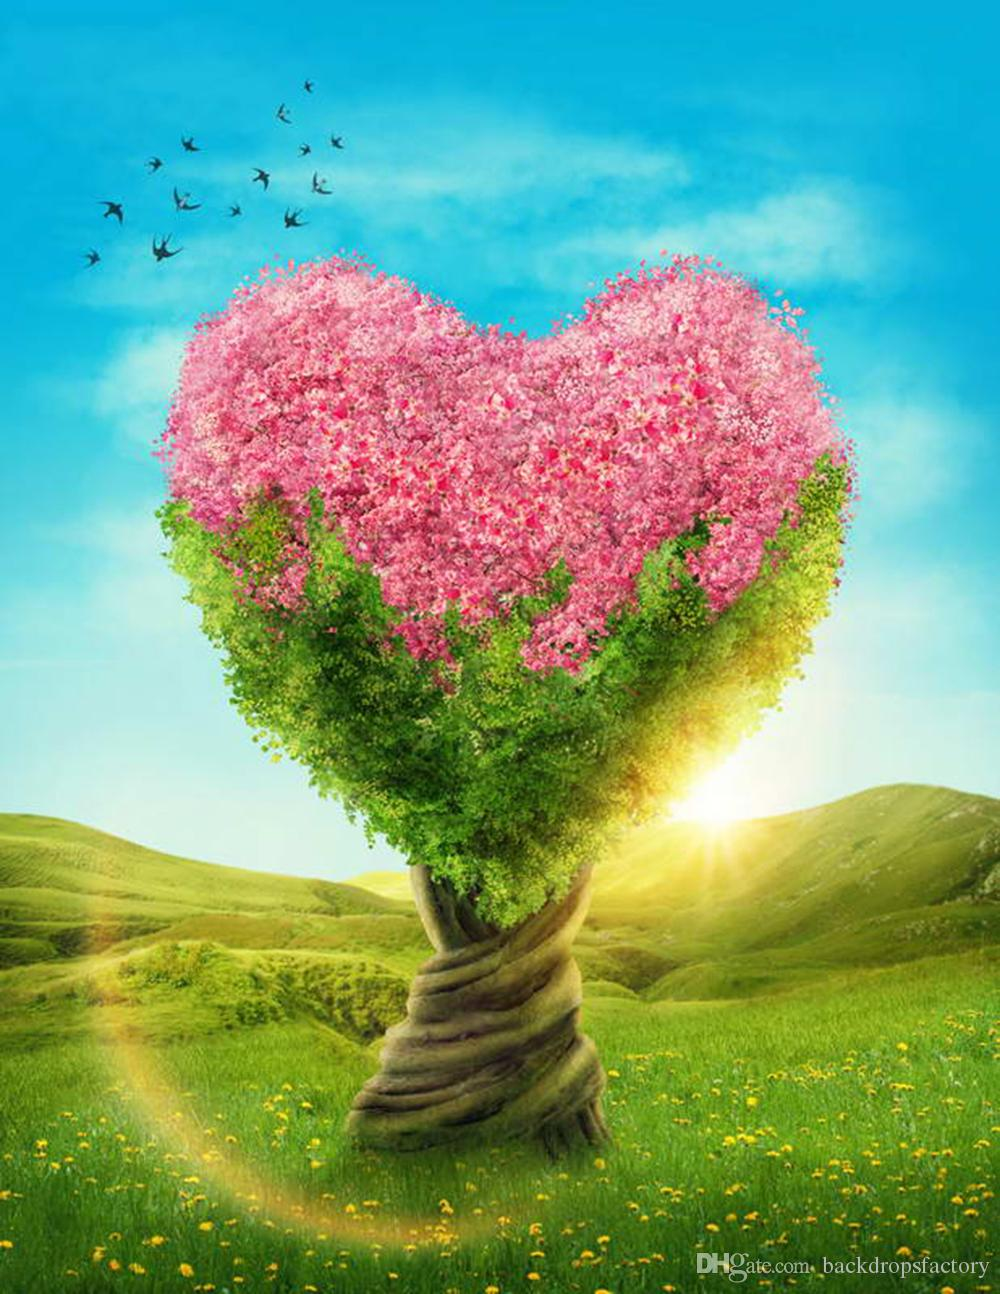 Heart Shaped Tree Backdrops With Pink Flowers Sunshine